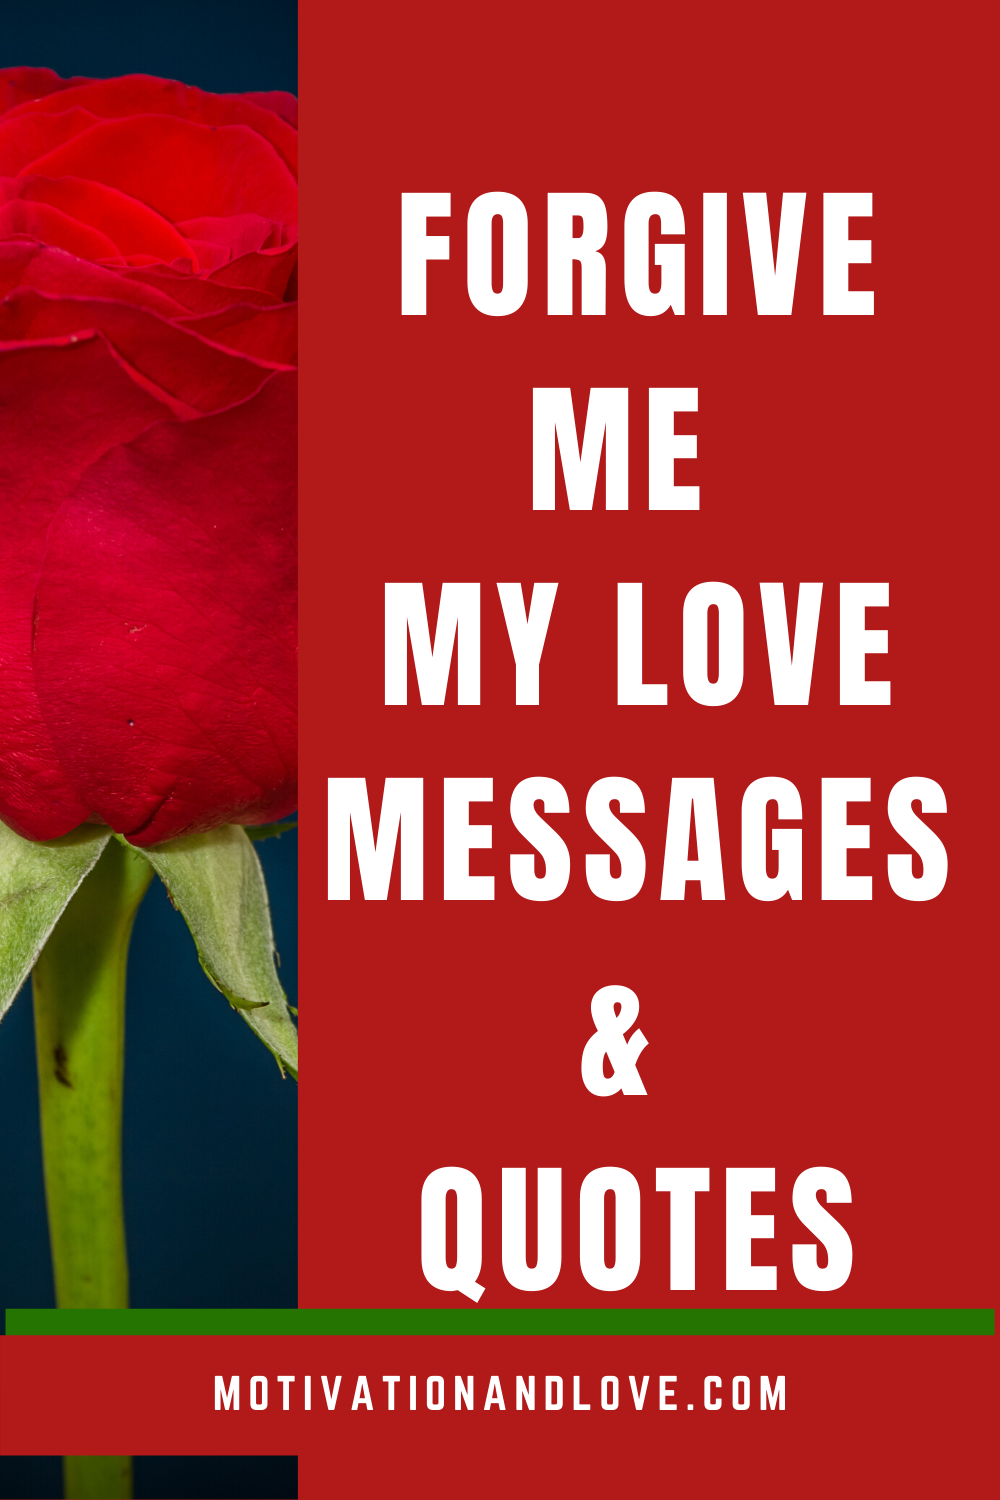 Pin by Musicinline on Quotes in 2020 Apologizing quotes